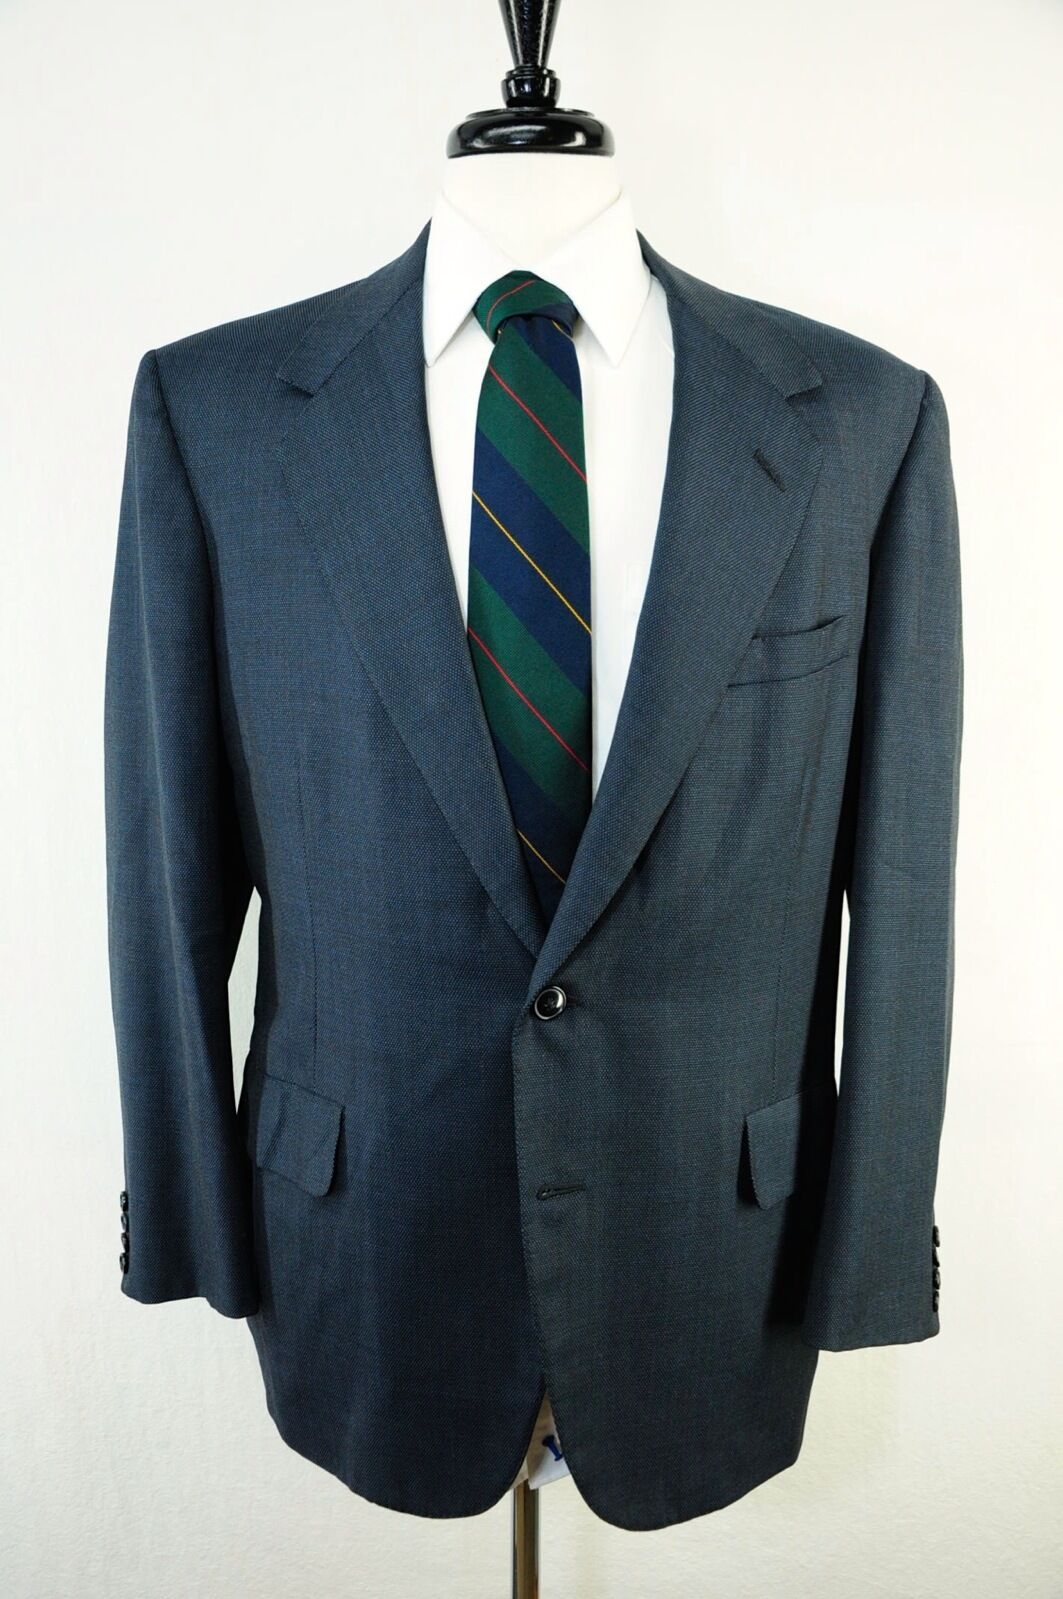 Oxxford Clothes Super Worsted Mansion Wool Navy bluee Sport Coat Blazer 42R